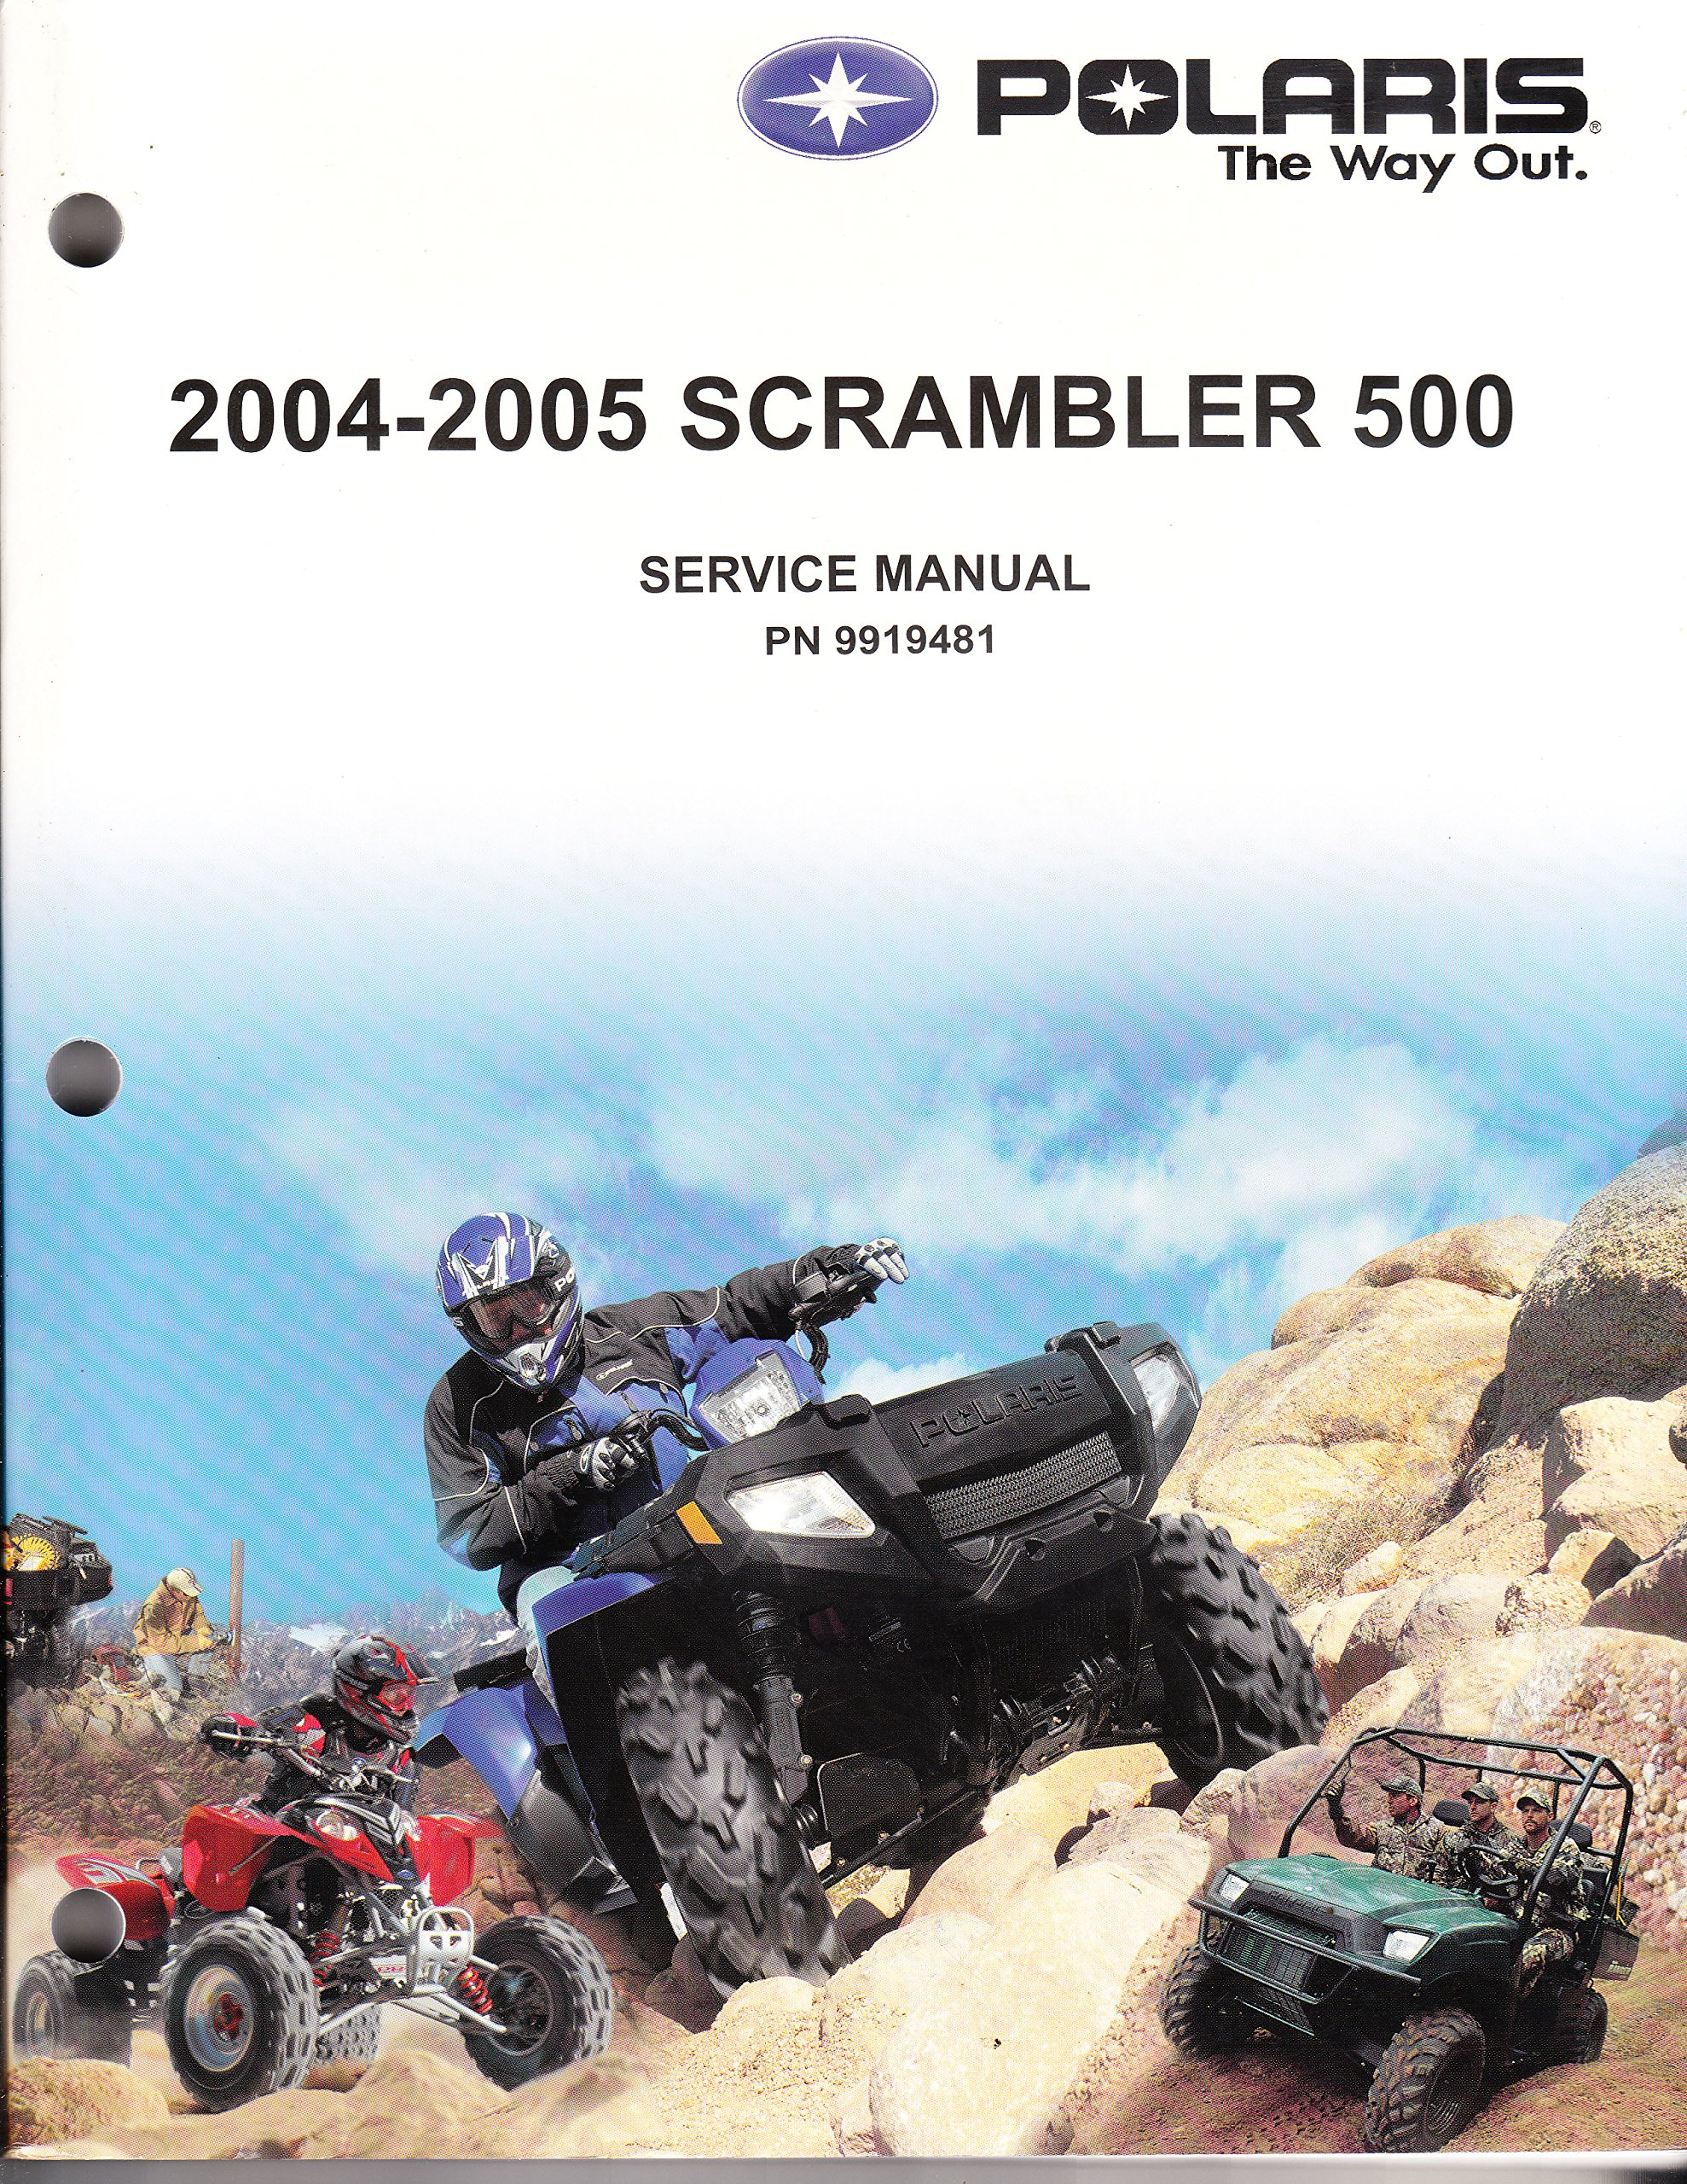 Polaris ATV 2004-2005 Scrambler 500 Service Repair Manual #9919481: Polaris:  6122905640939: Amazon.com: Books